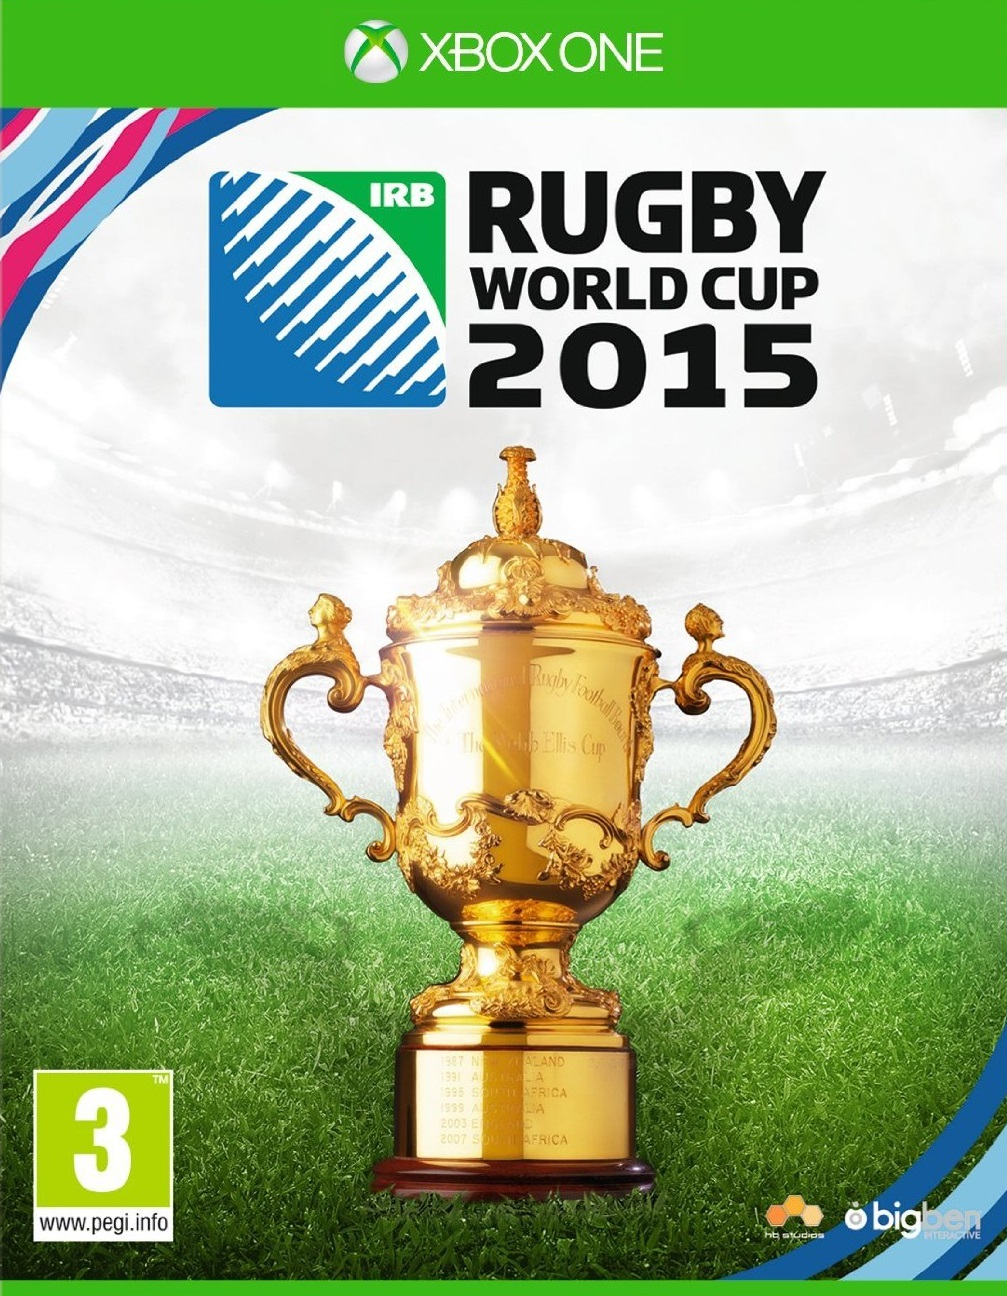 rugby world cup 2015 xb1